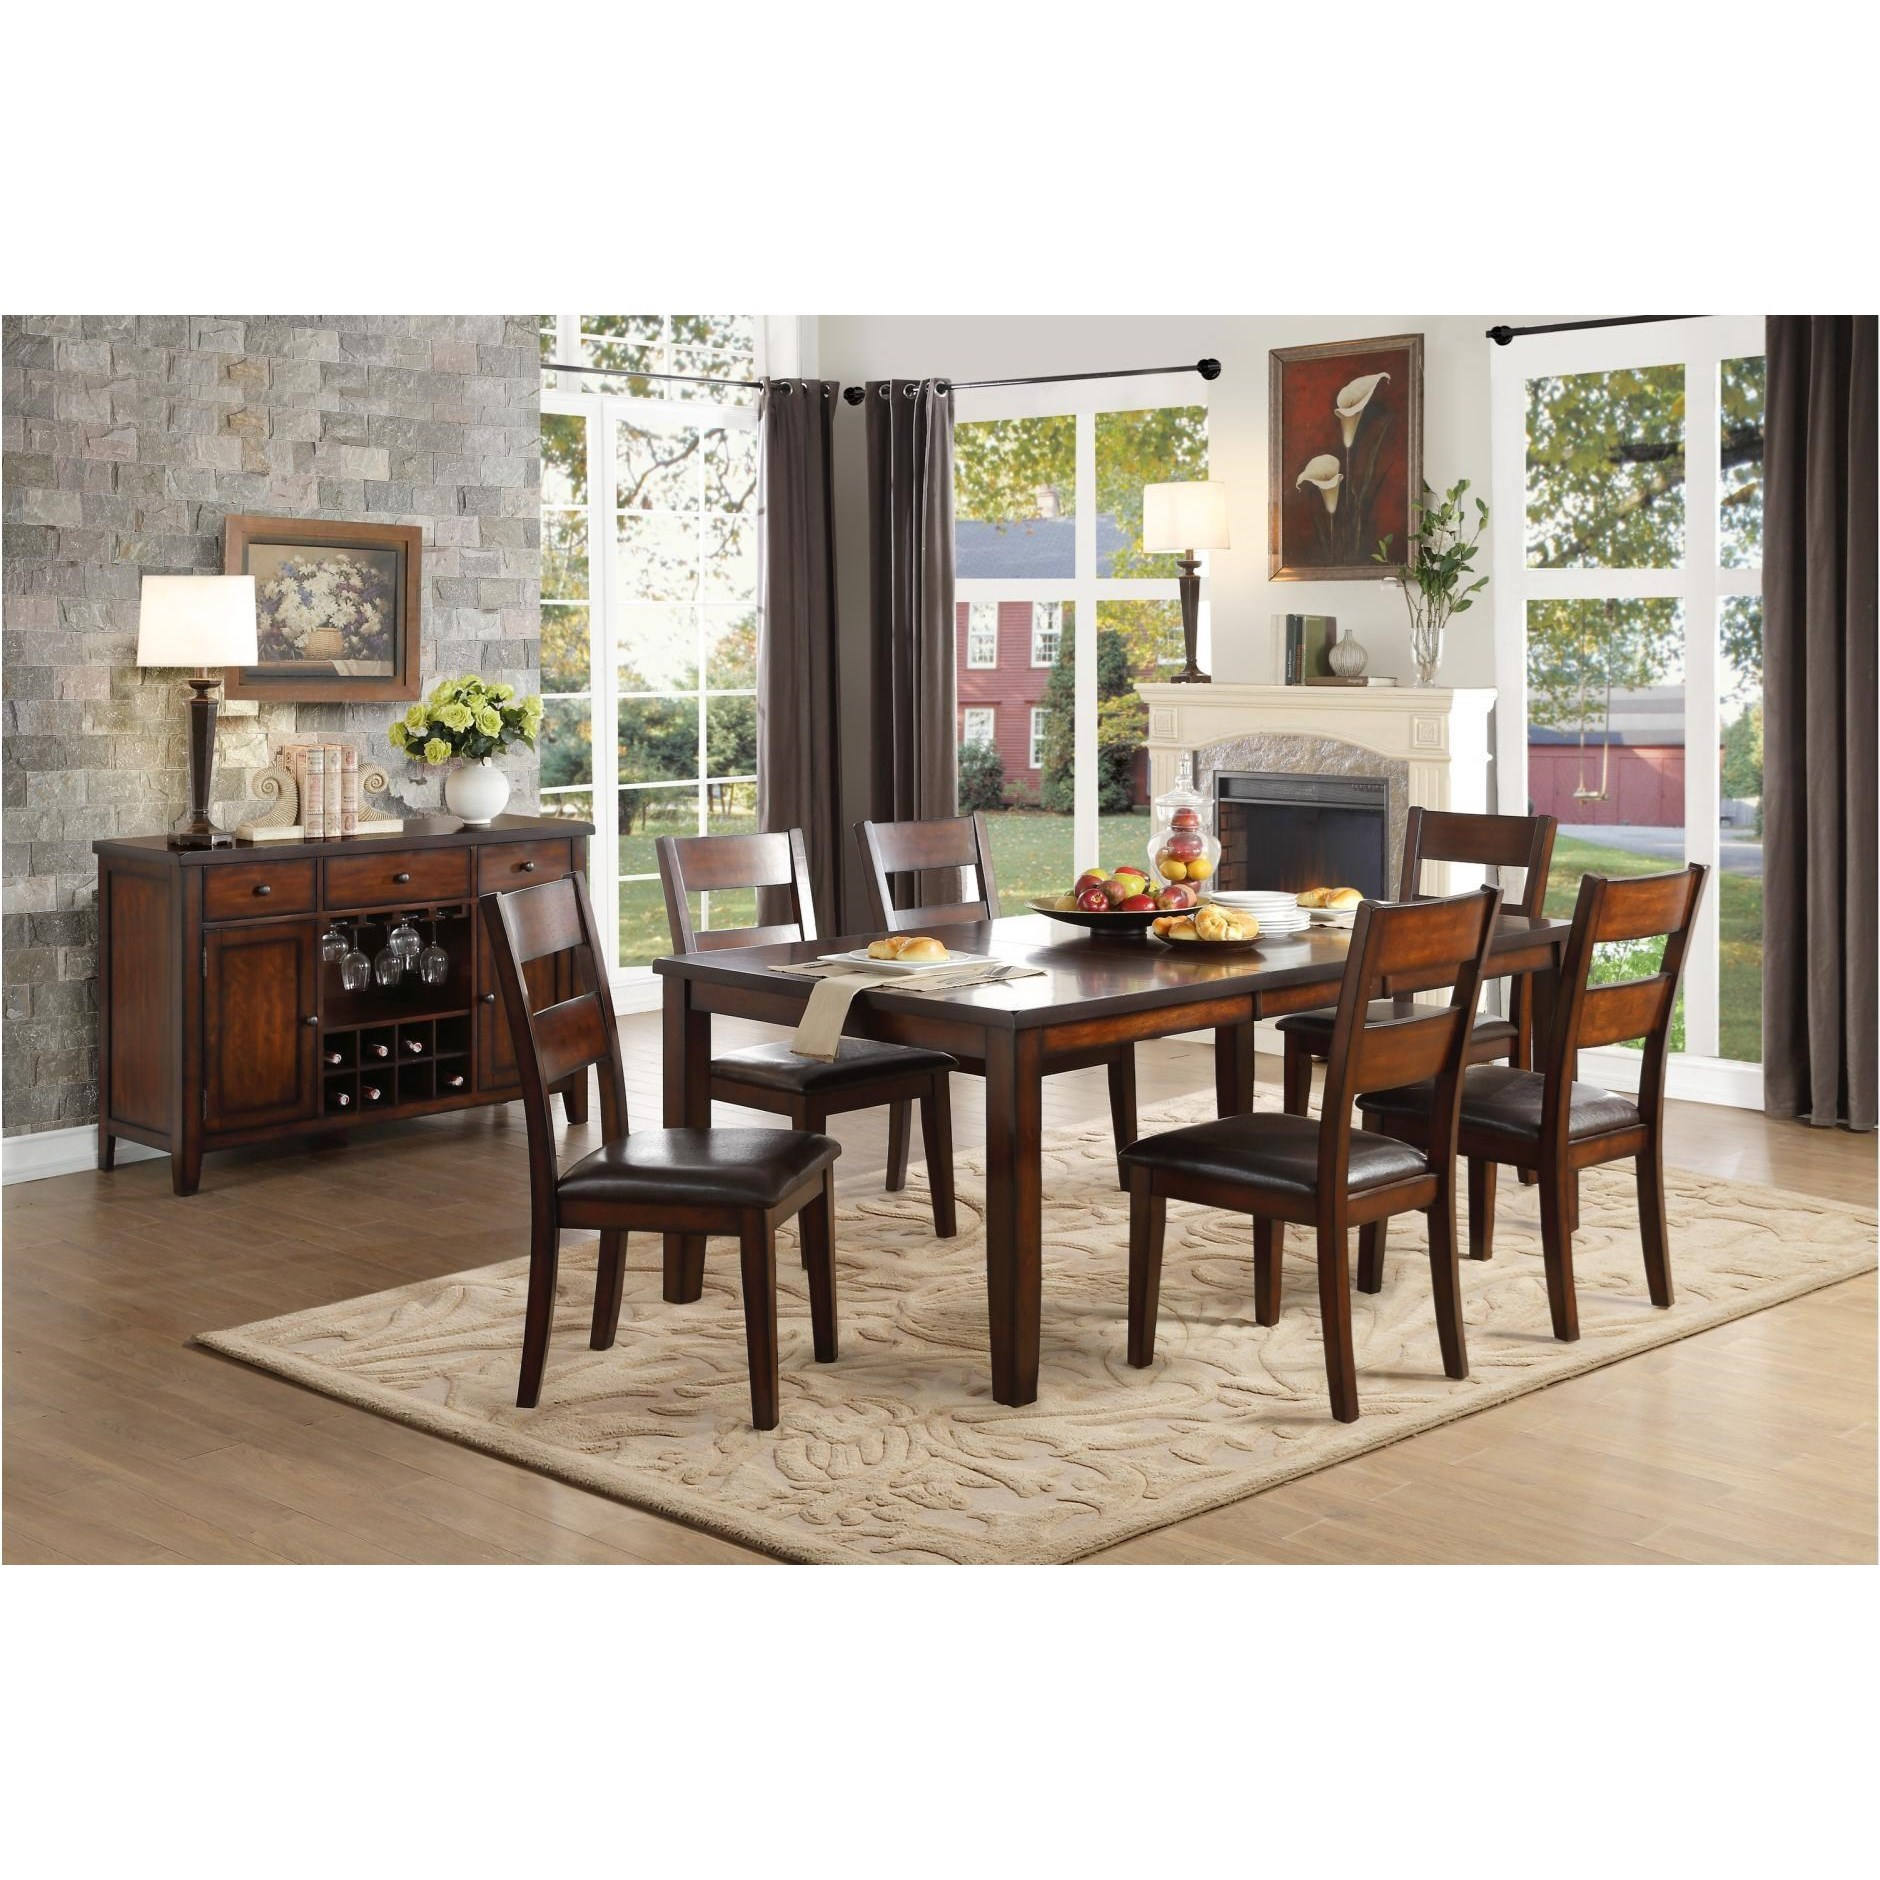 City Furniture Dining Room: Homelegance Mantello Dining Room Group